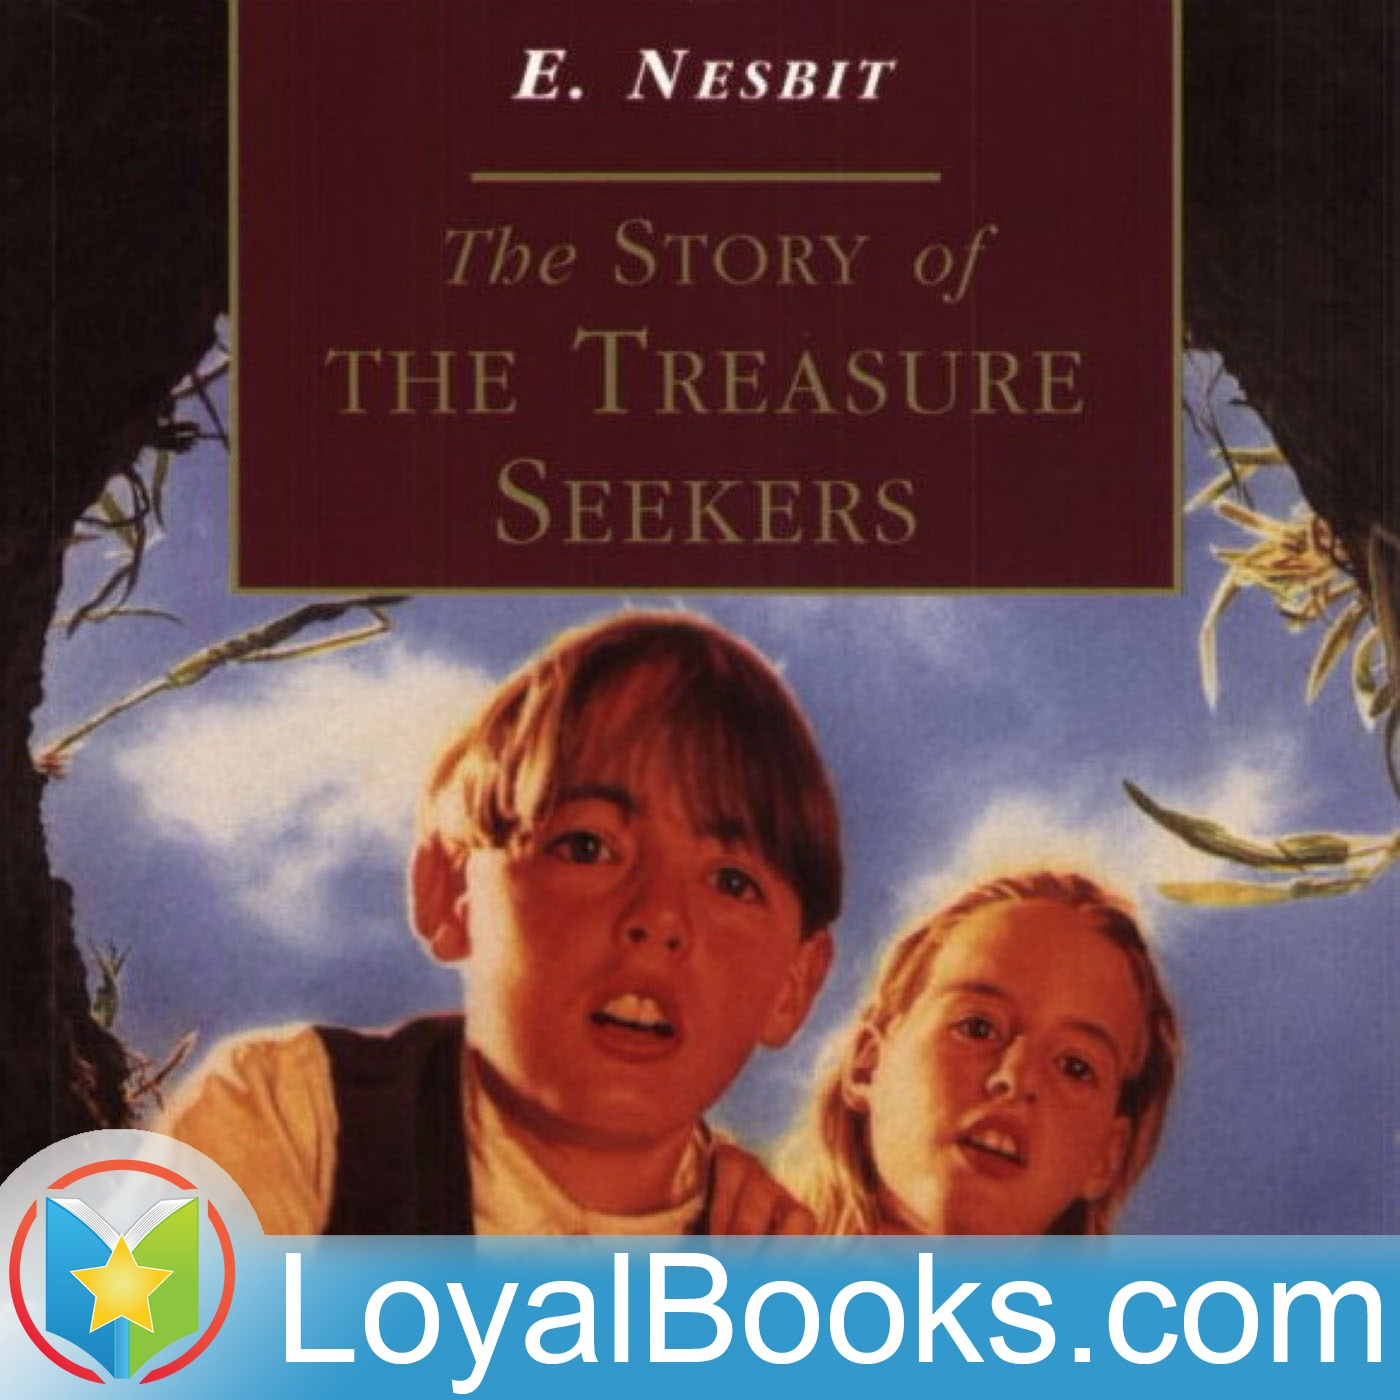 <![CDATA[The Story of the Treasure Seekers by Edith Nesbit]]>